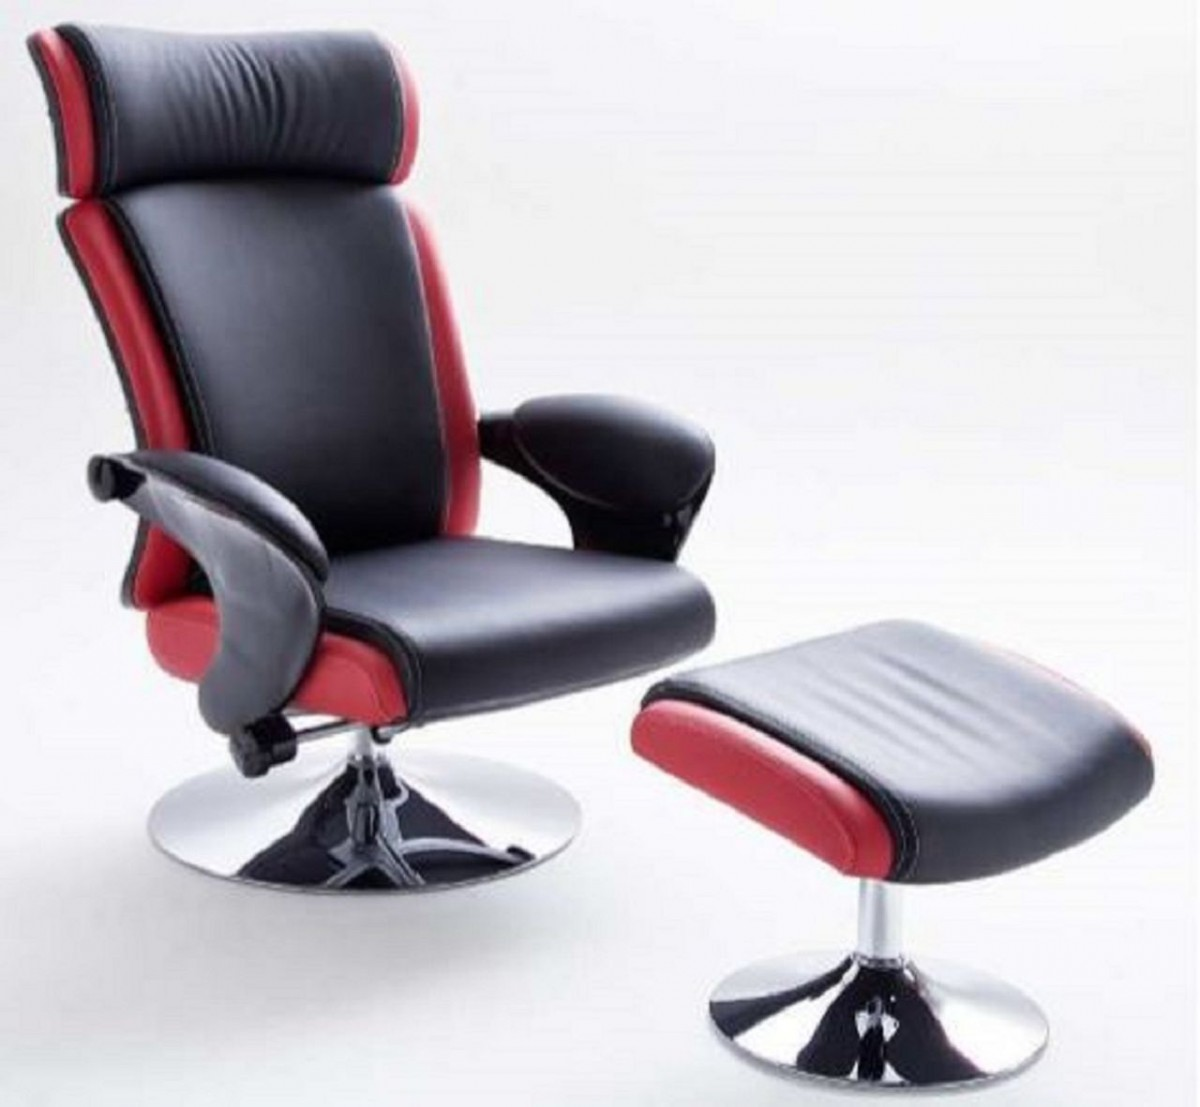 Dreams4home Relax Sessel Anni Relaxsessel Sessel Relaxer Tv